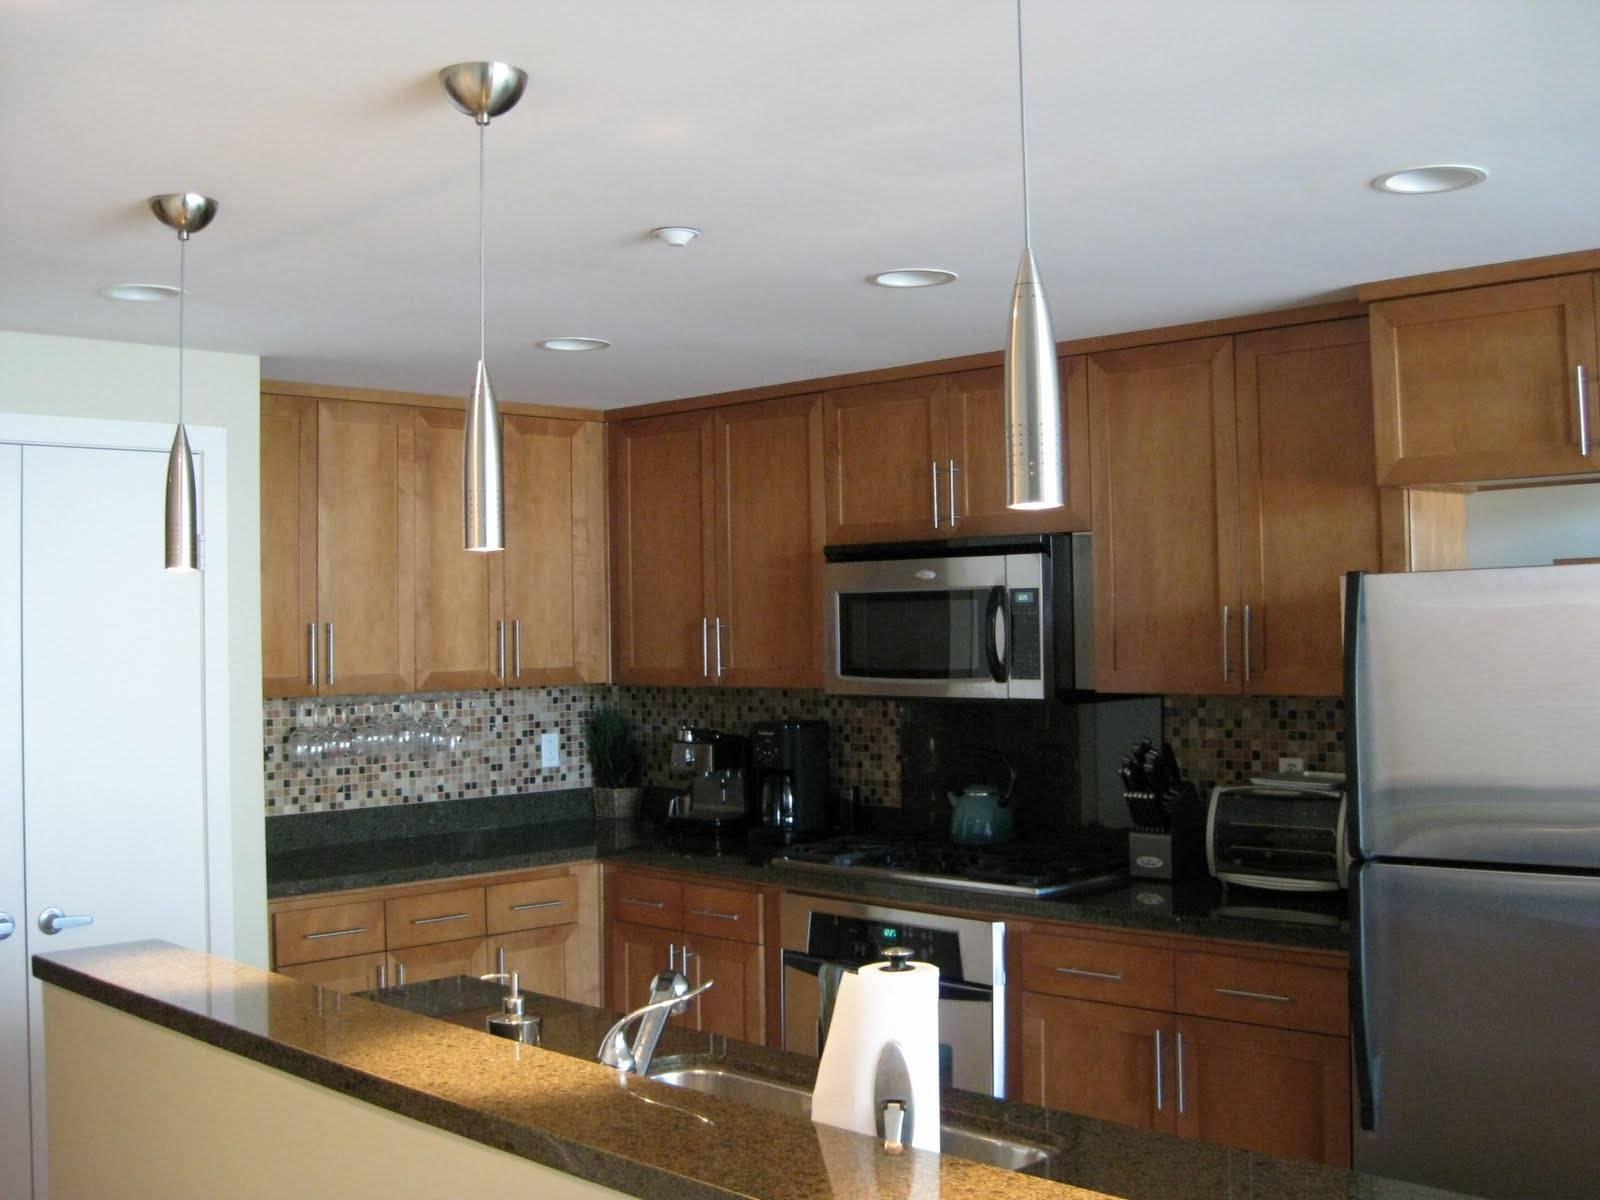 Great Pendant Light Fixtures For Kitchen Island — Decor Trends Within Stainless Steel Kitchen Pendant Lights (View 3 of 15)